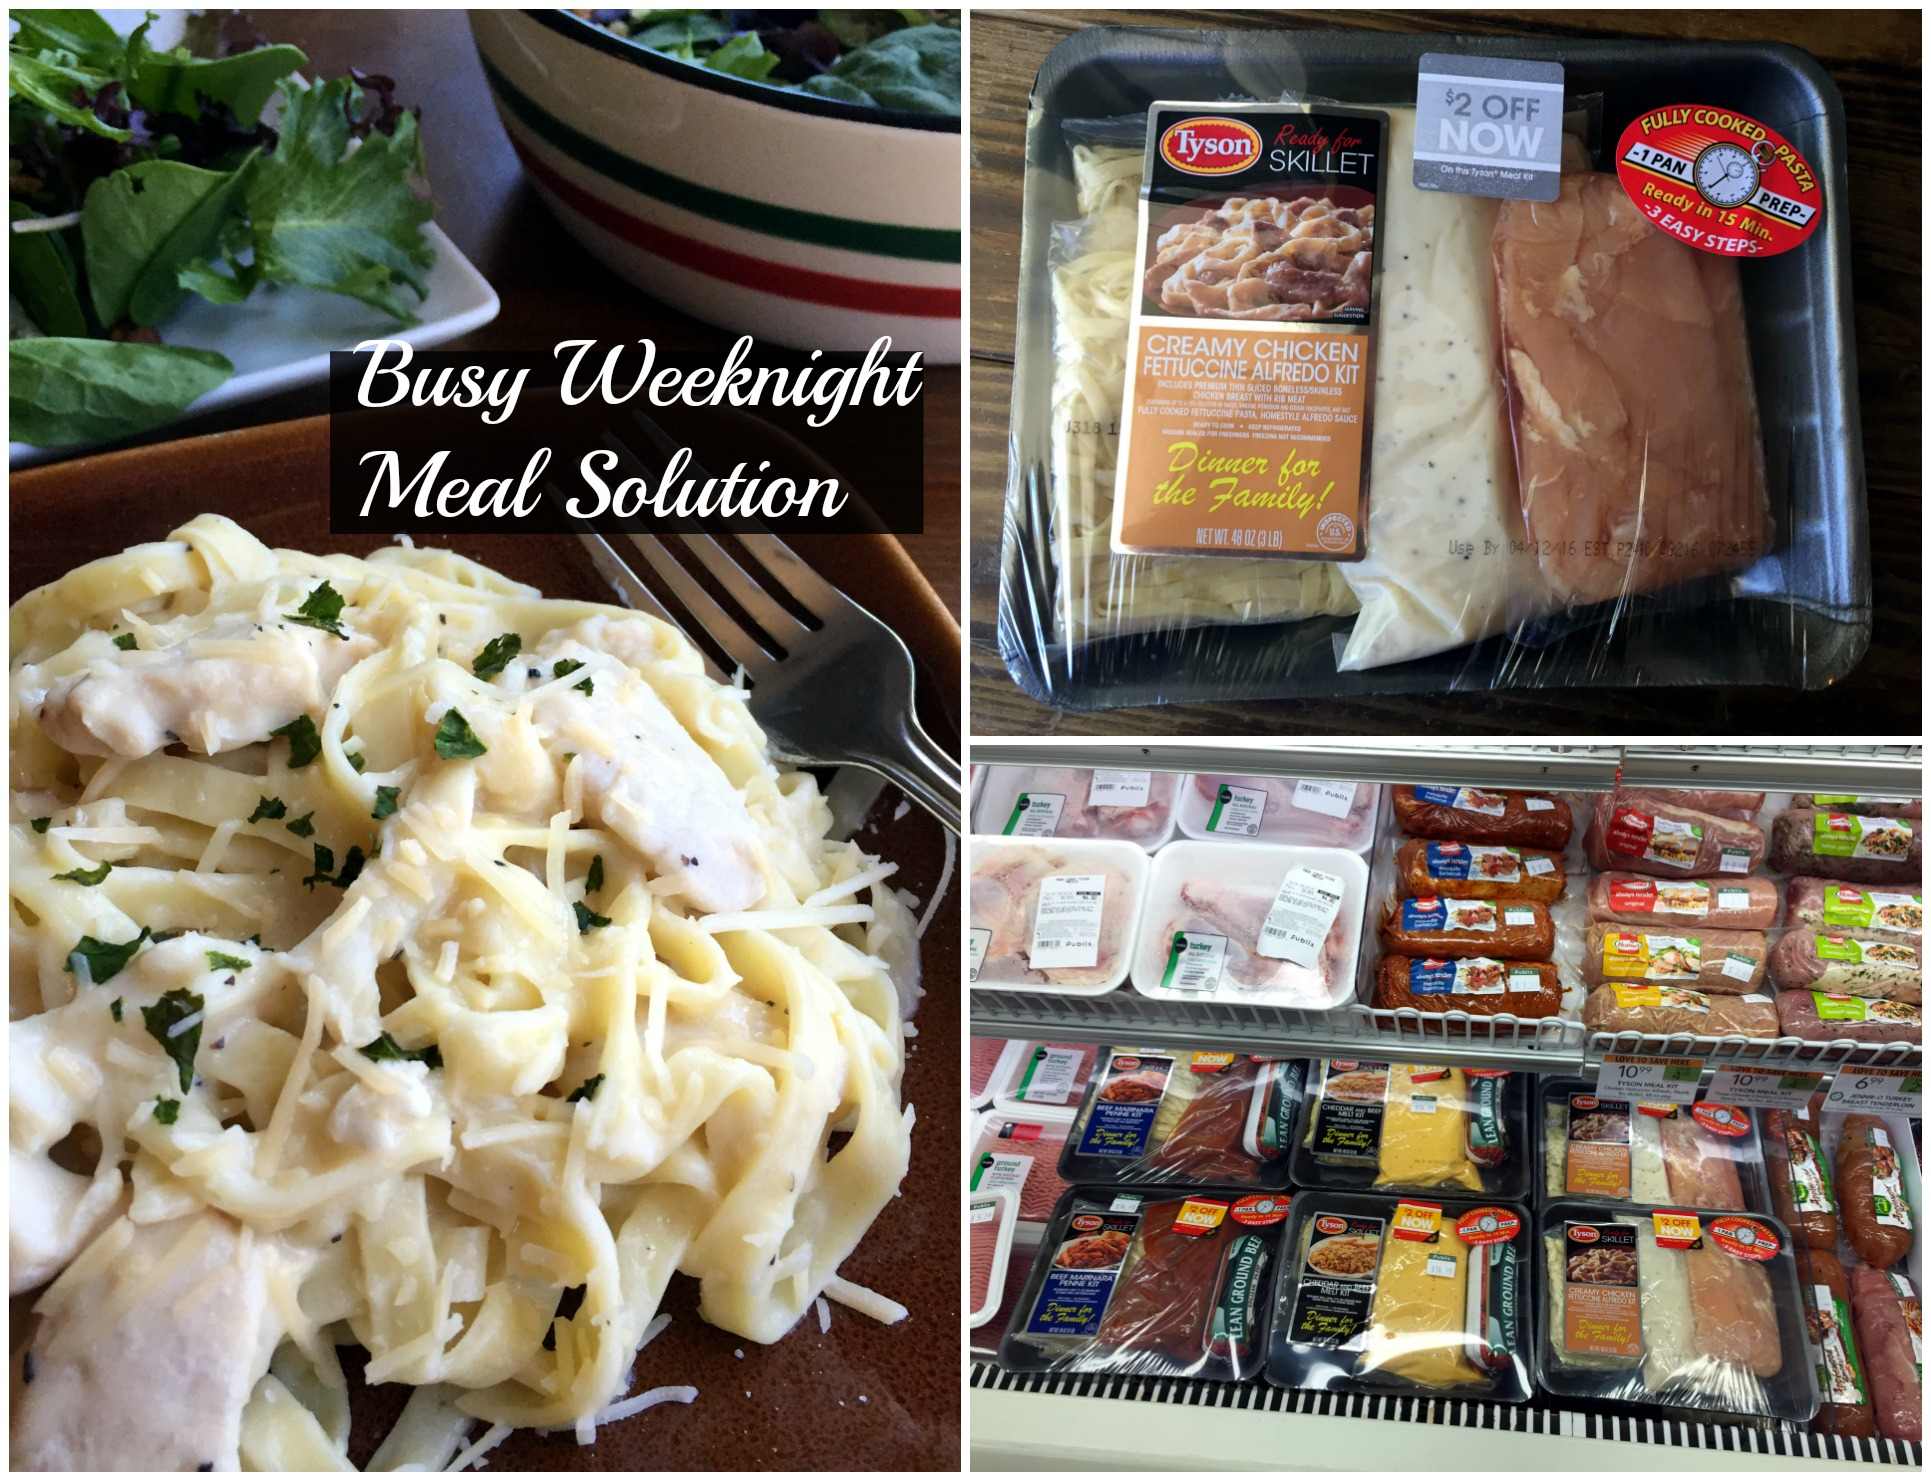 Busy Weeknight Meal Solution